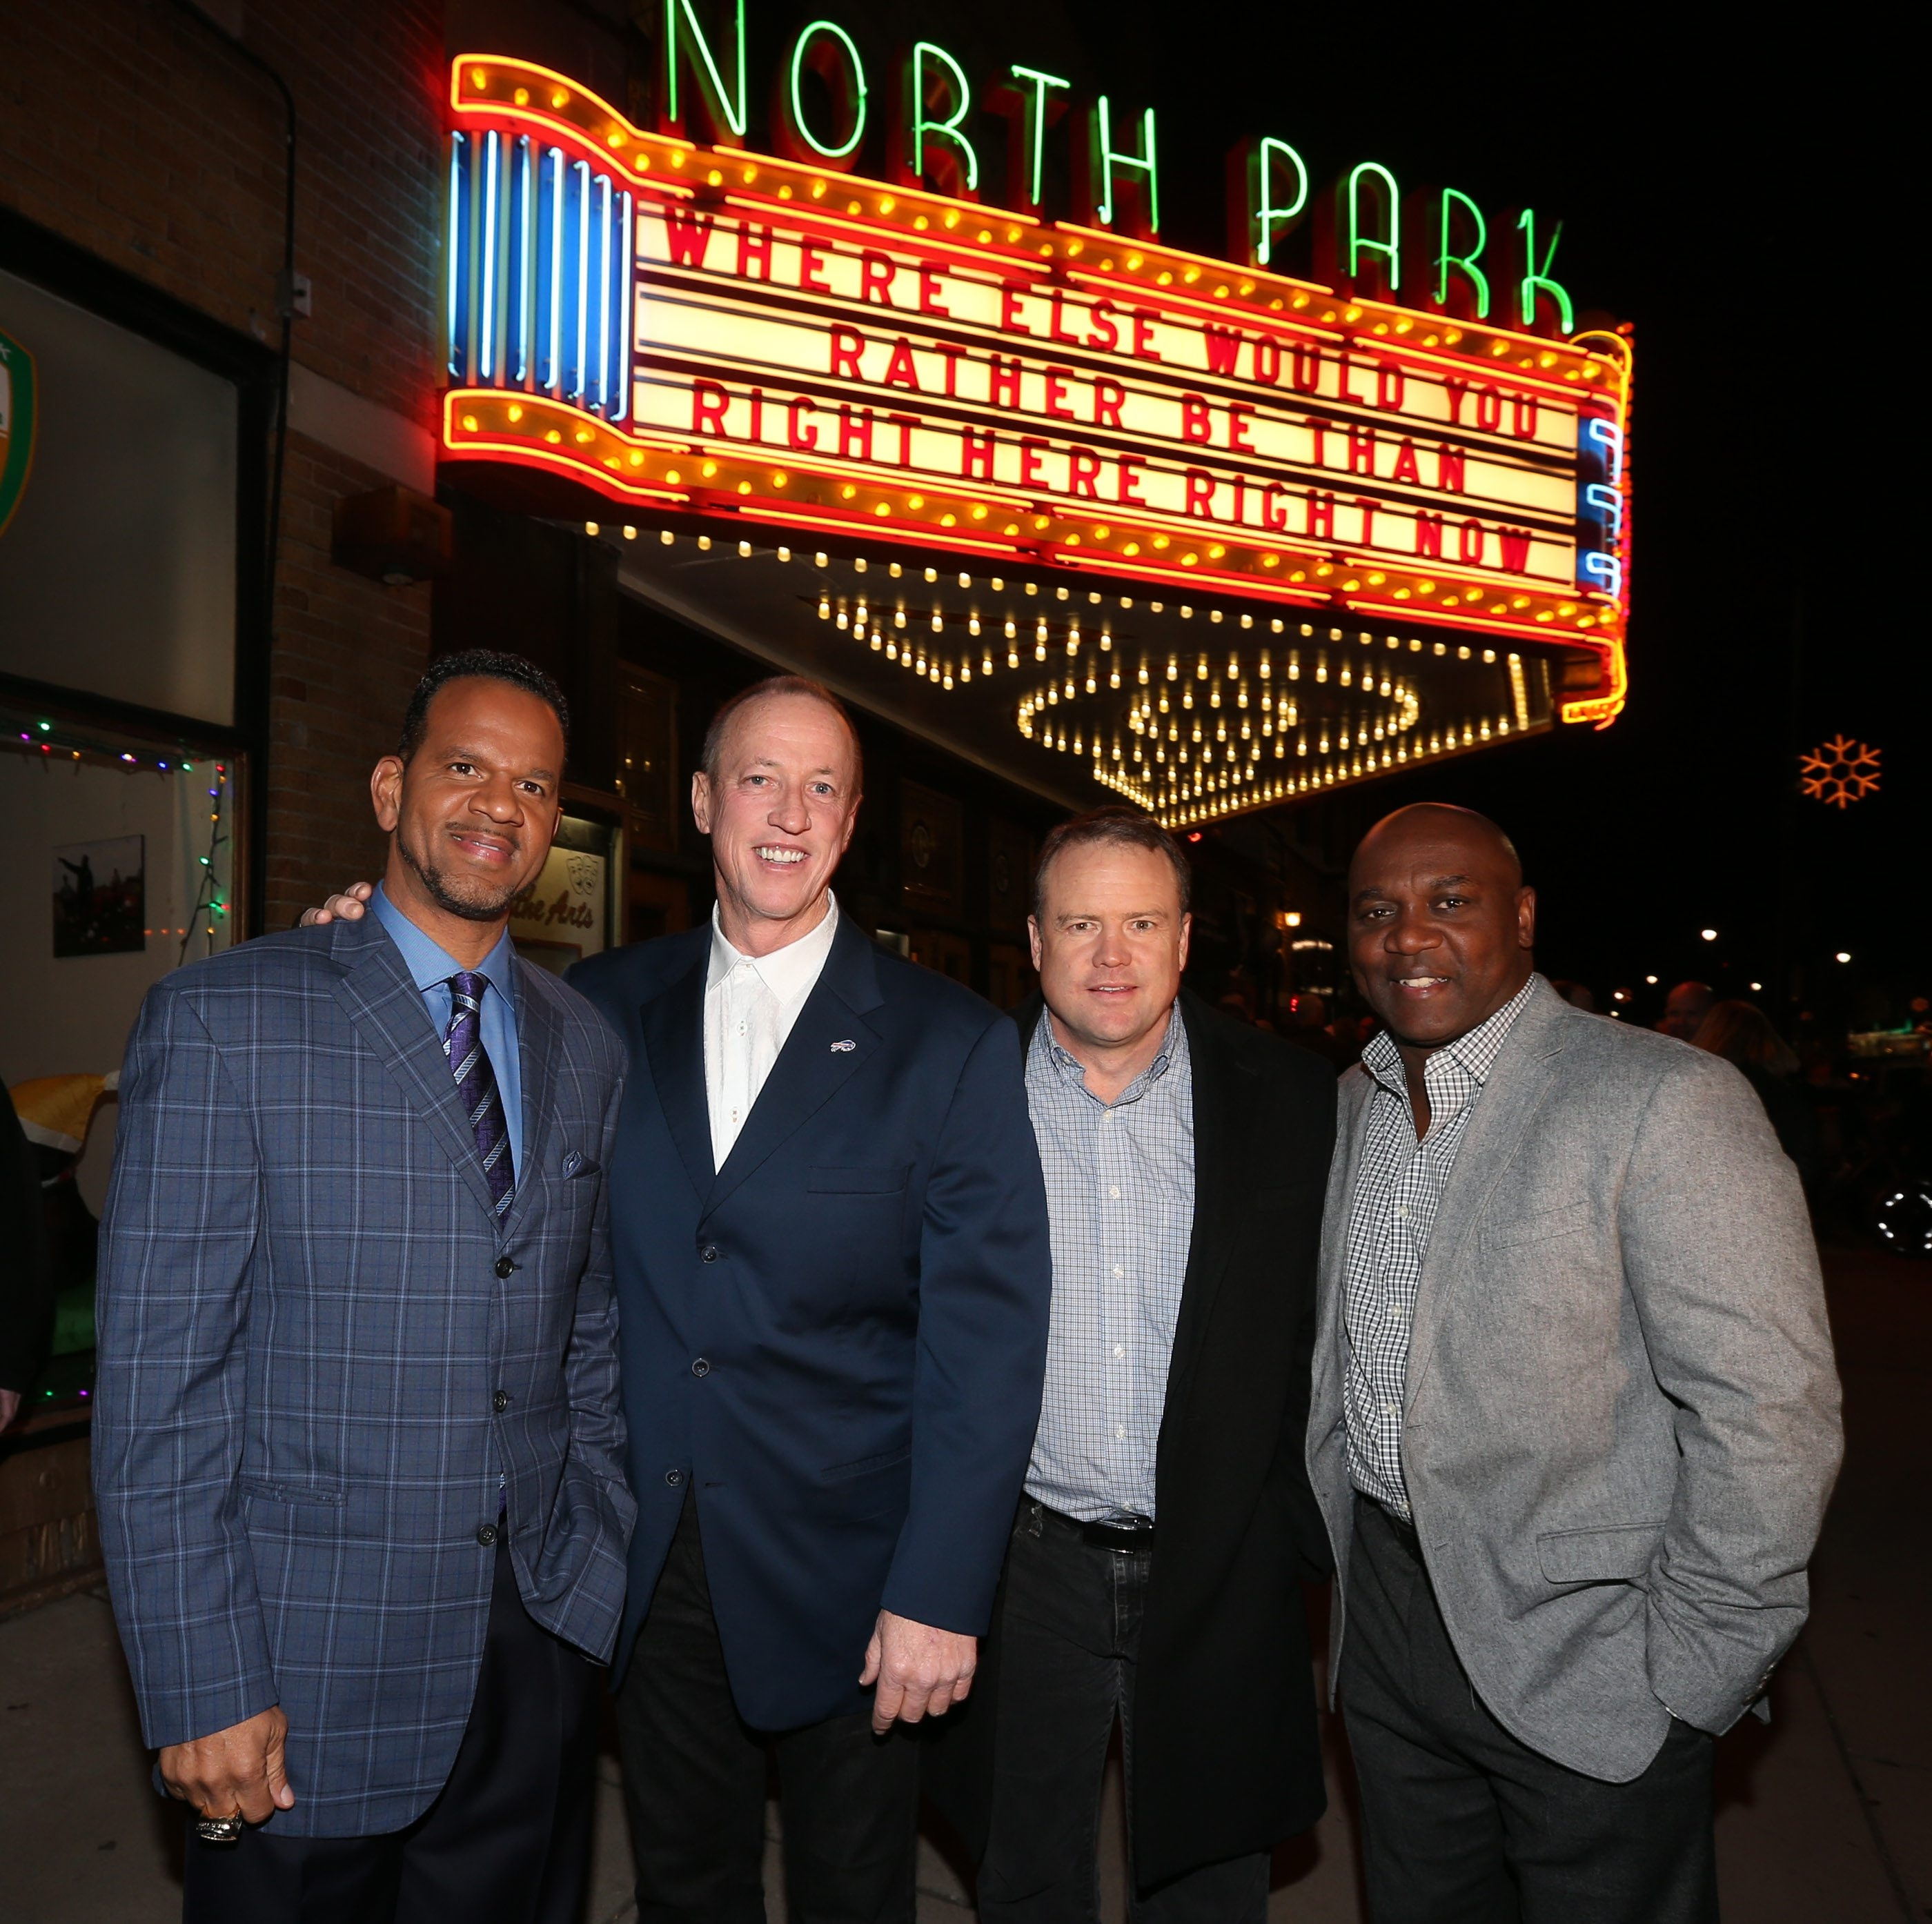 "From left, Andre Reed, Jim Kelly, Steve Tasker and Thurman Thomas stand shoulder to shoulder outside the North Park Theatre, where the world premiere was held Wednesday night for the ESPN film ""Four Falls of Buffalo."""